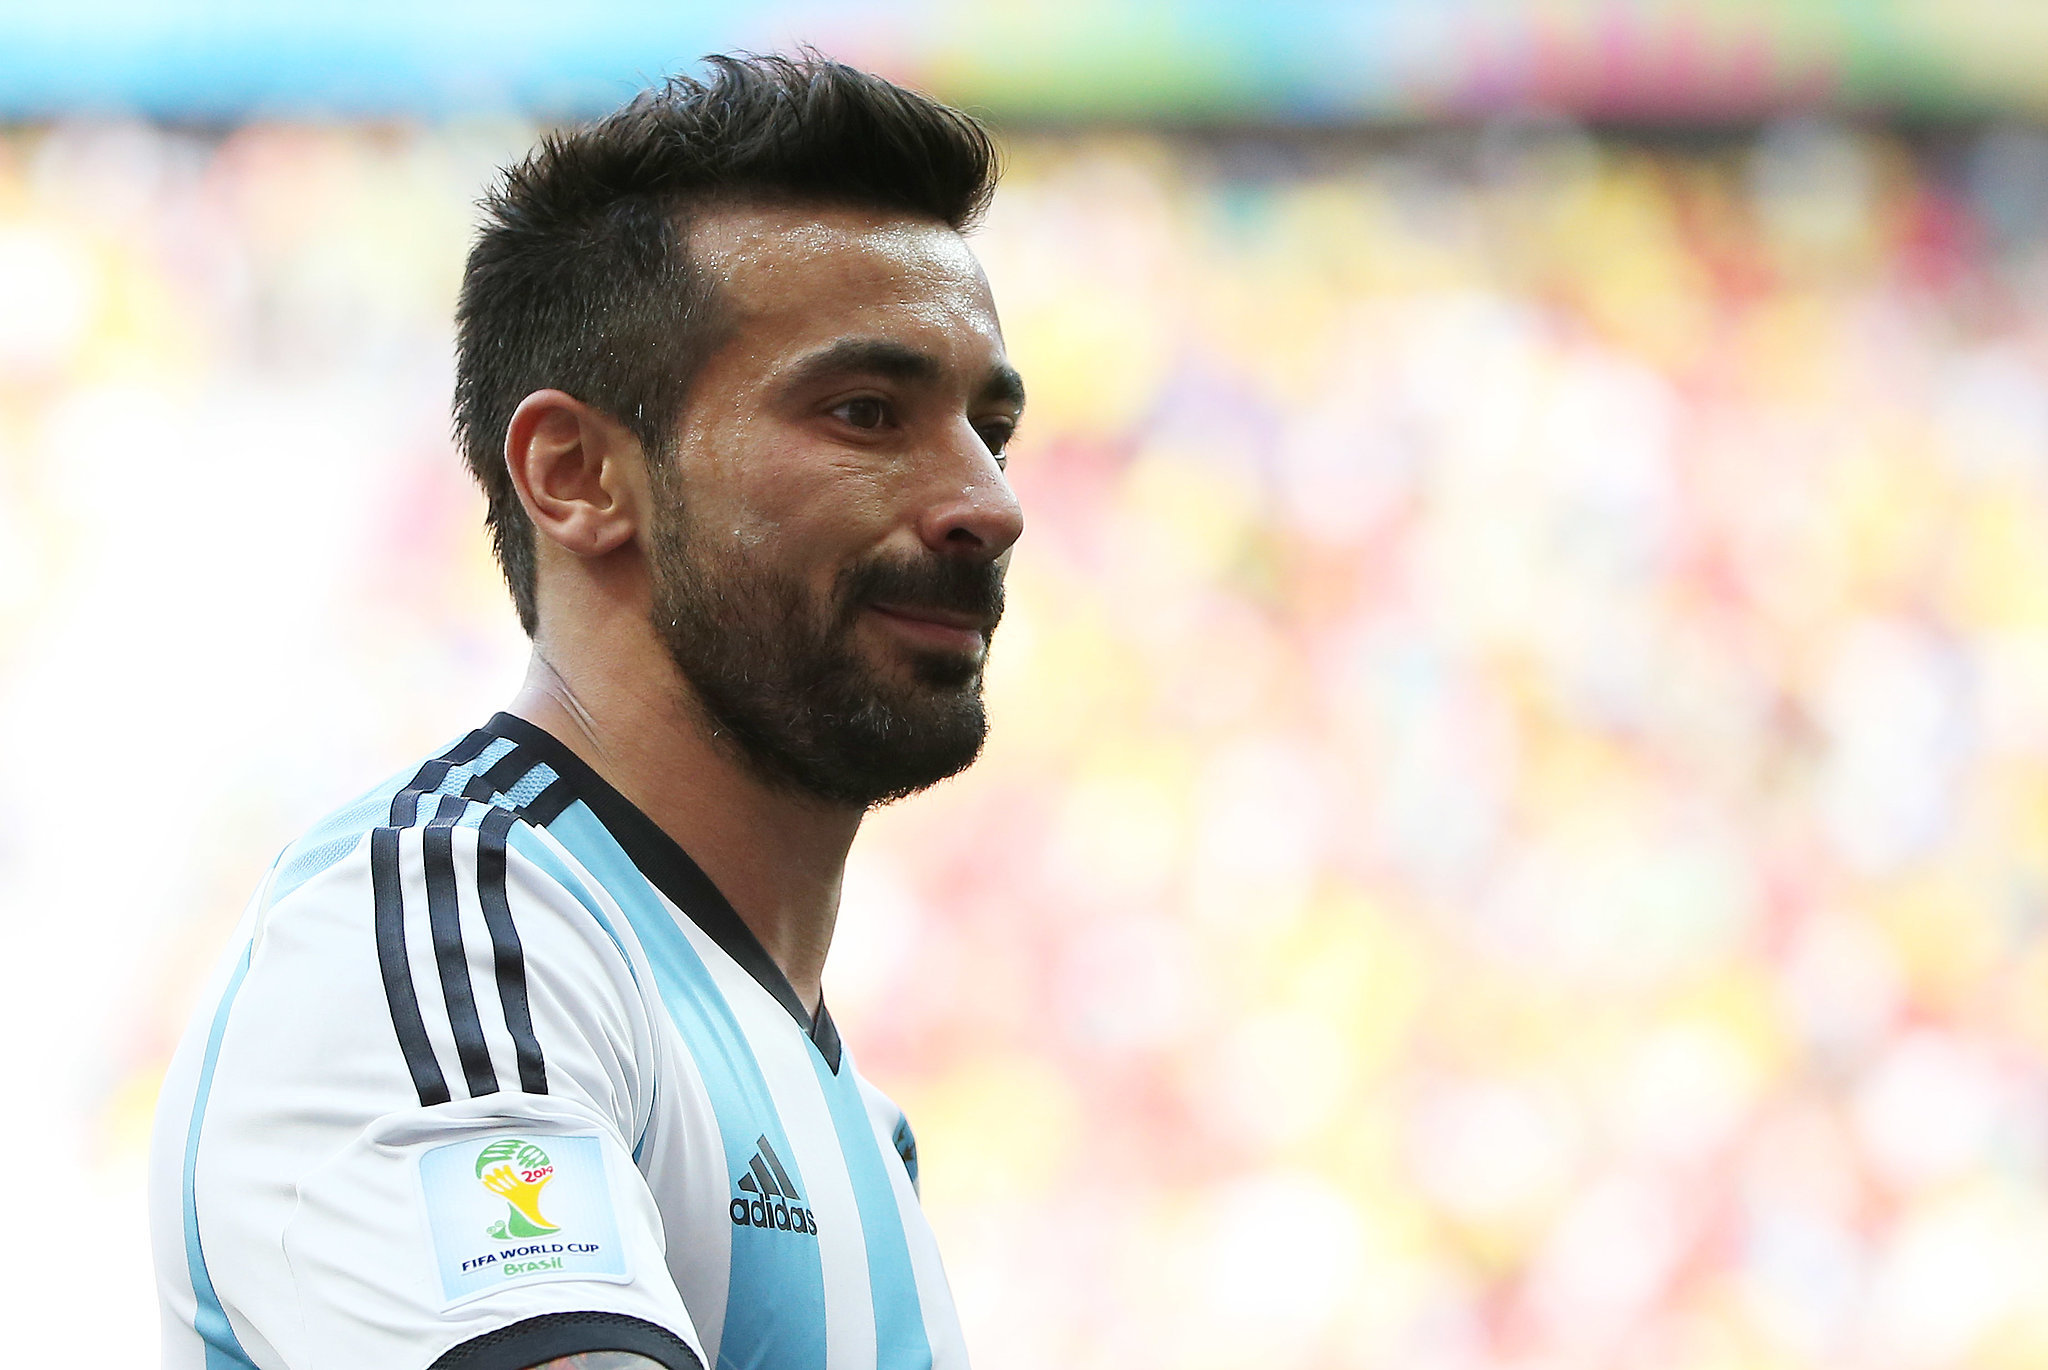 Sky – Inter smile as tension risen between PSG and Lavezzi